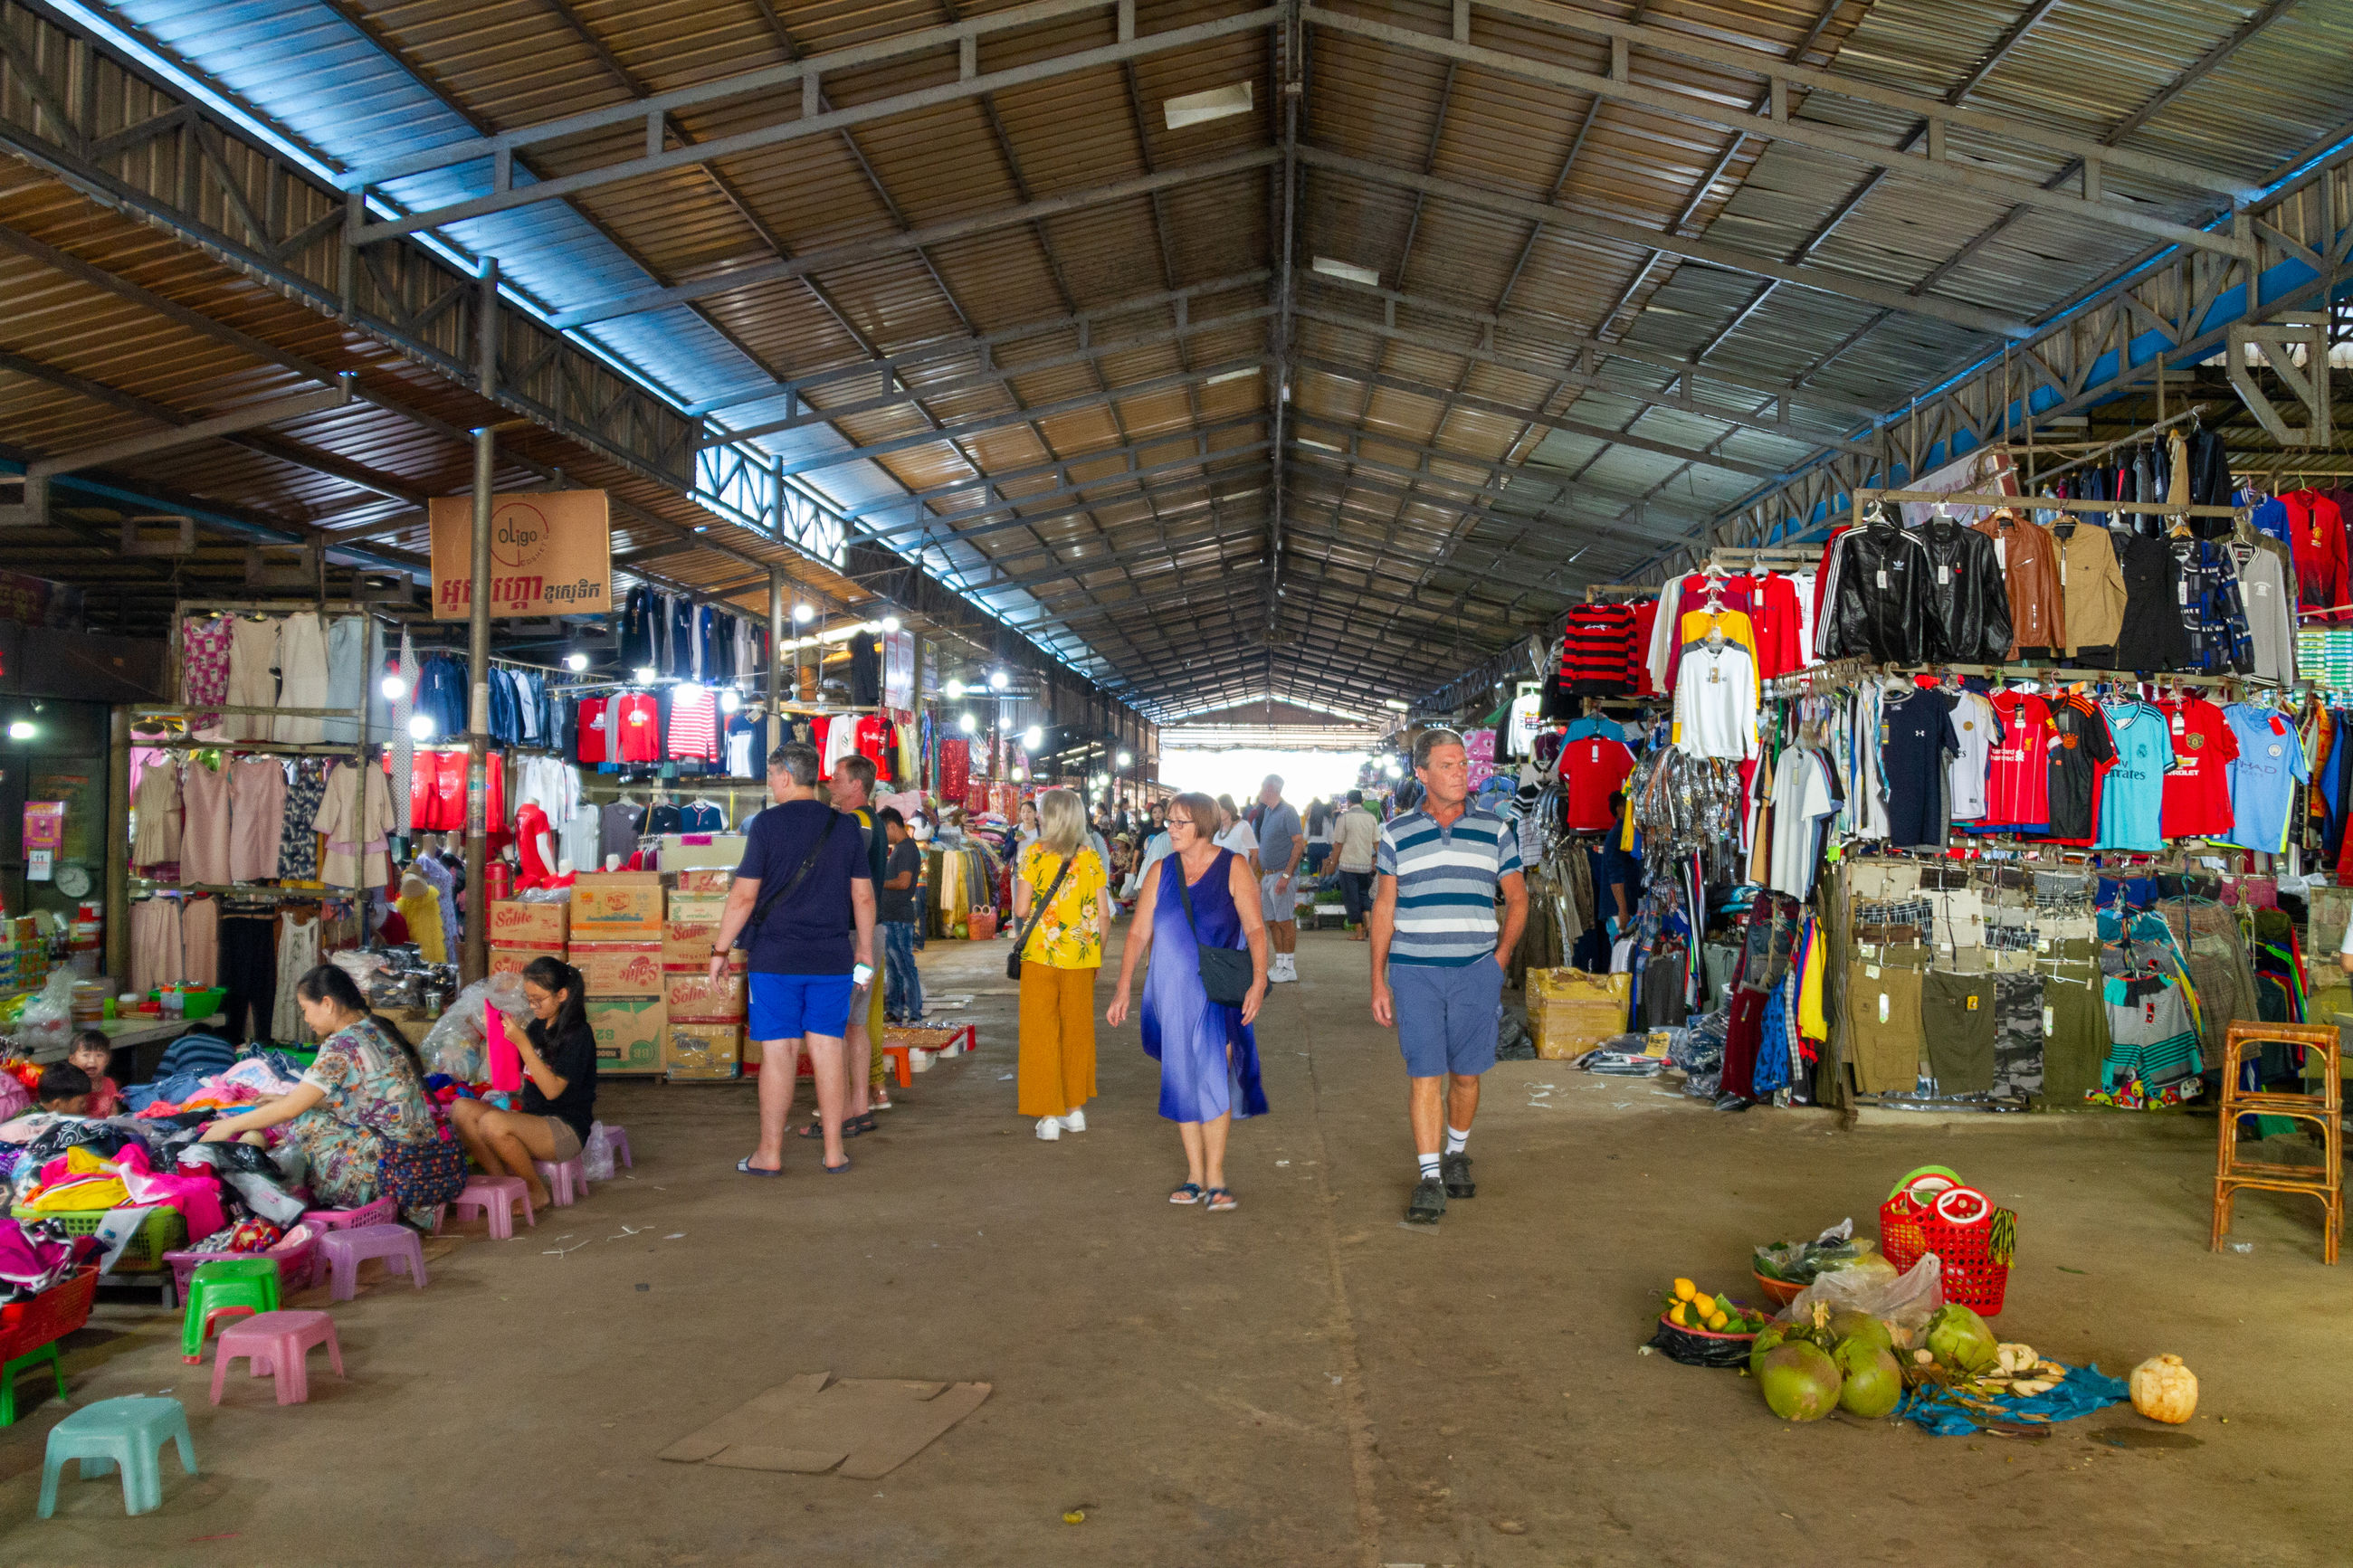 group of people, indoors, large group of people, women, adult, real people, crowd, men, architecture, market, retail, choice, walking, shopping, full length, business, day, large group of objects, lifestyles, ceiling